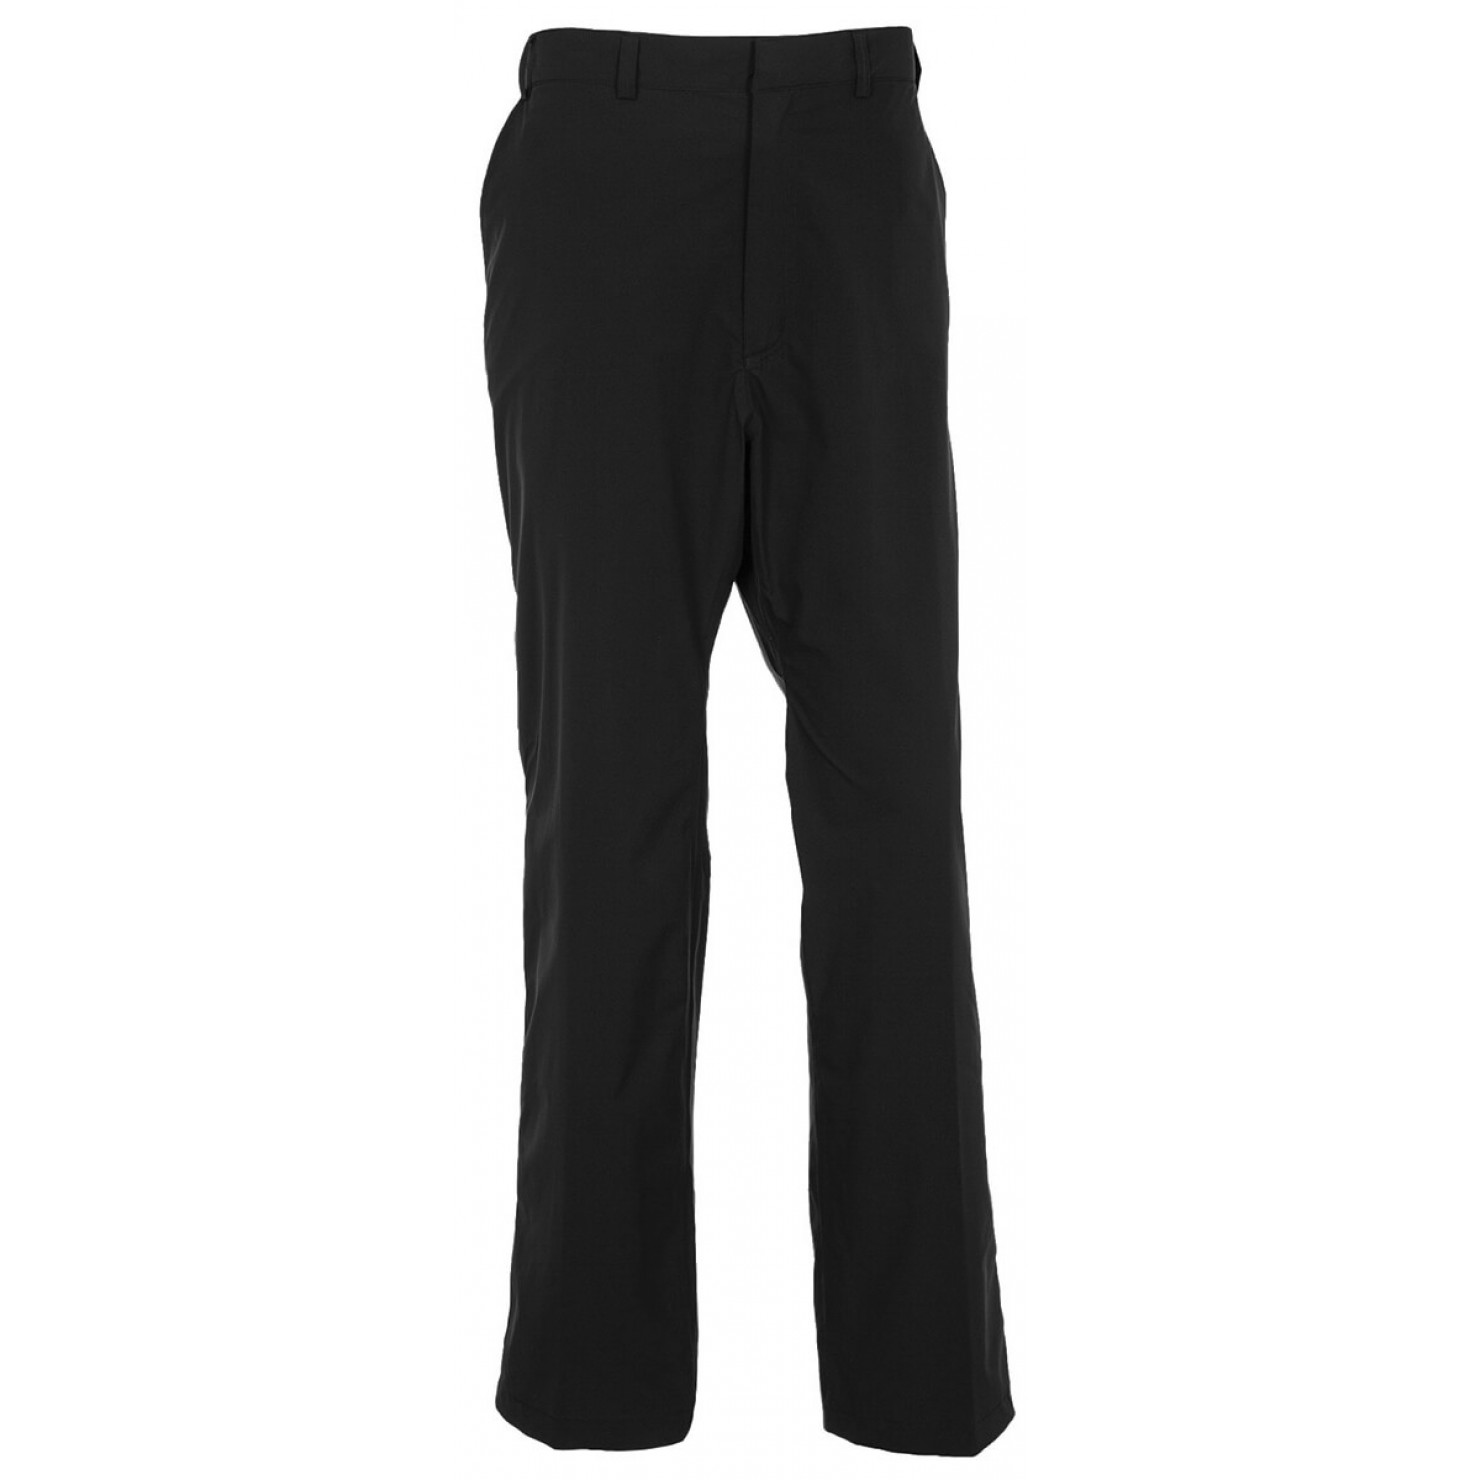 Typhoon pants sunice ron waterproof rain pants black typhoon collection HNQZBXS